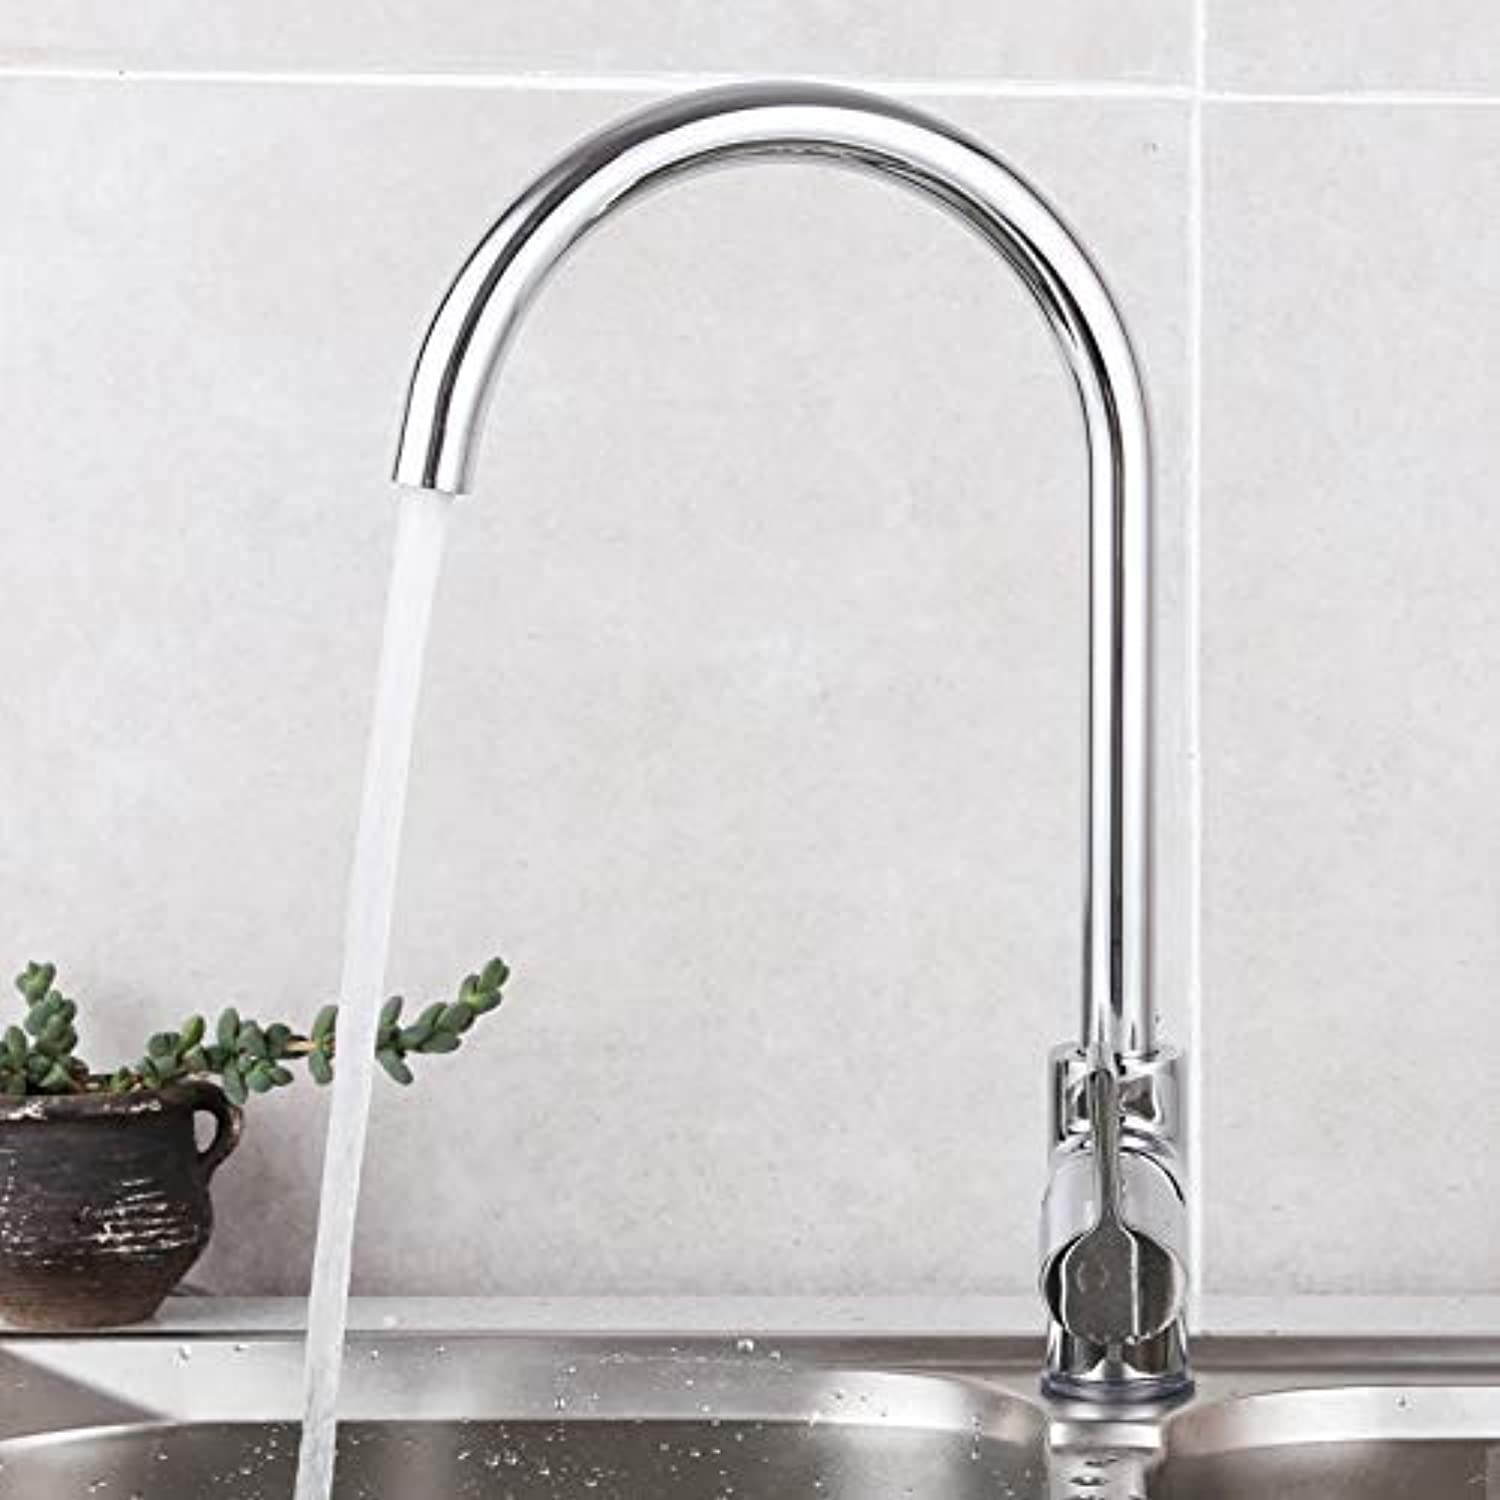 Oudan Kitchen Kitchen Sink Bathroom Cabinet Faucet Hot and Cold Taps redation (color   -, Size   -)